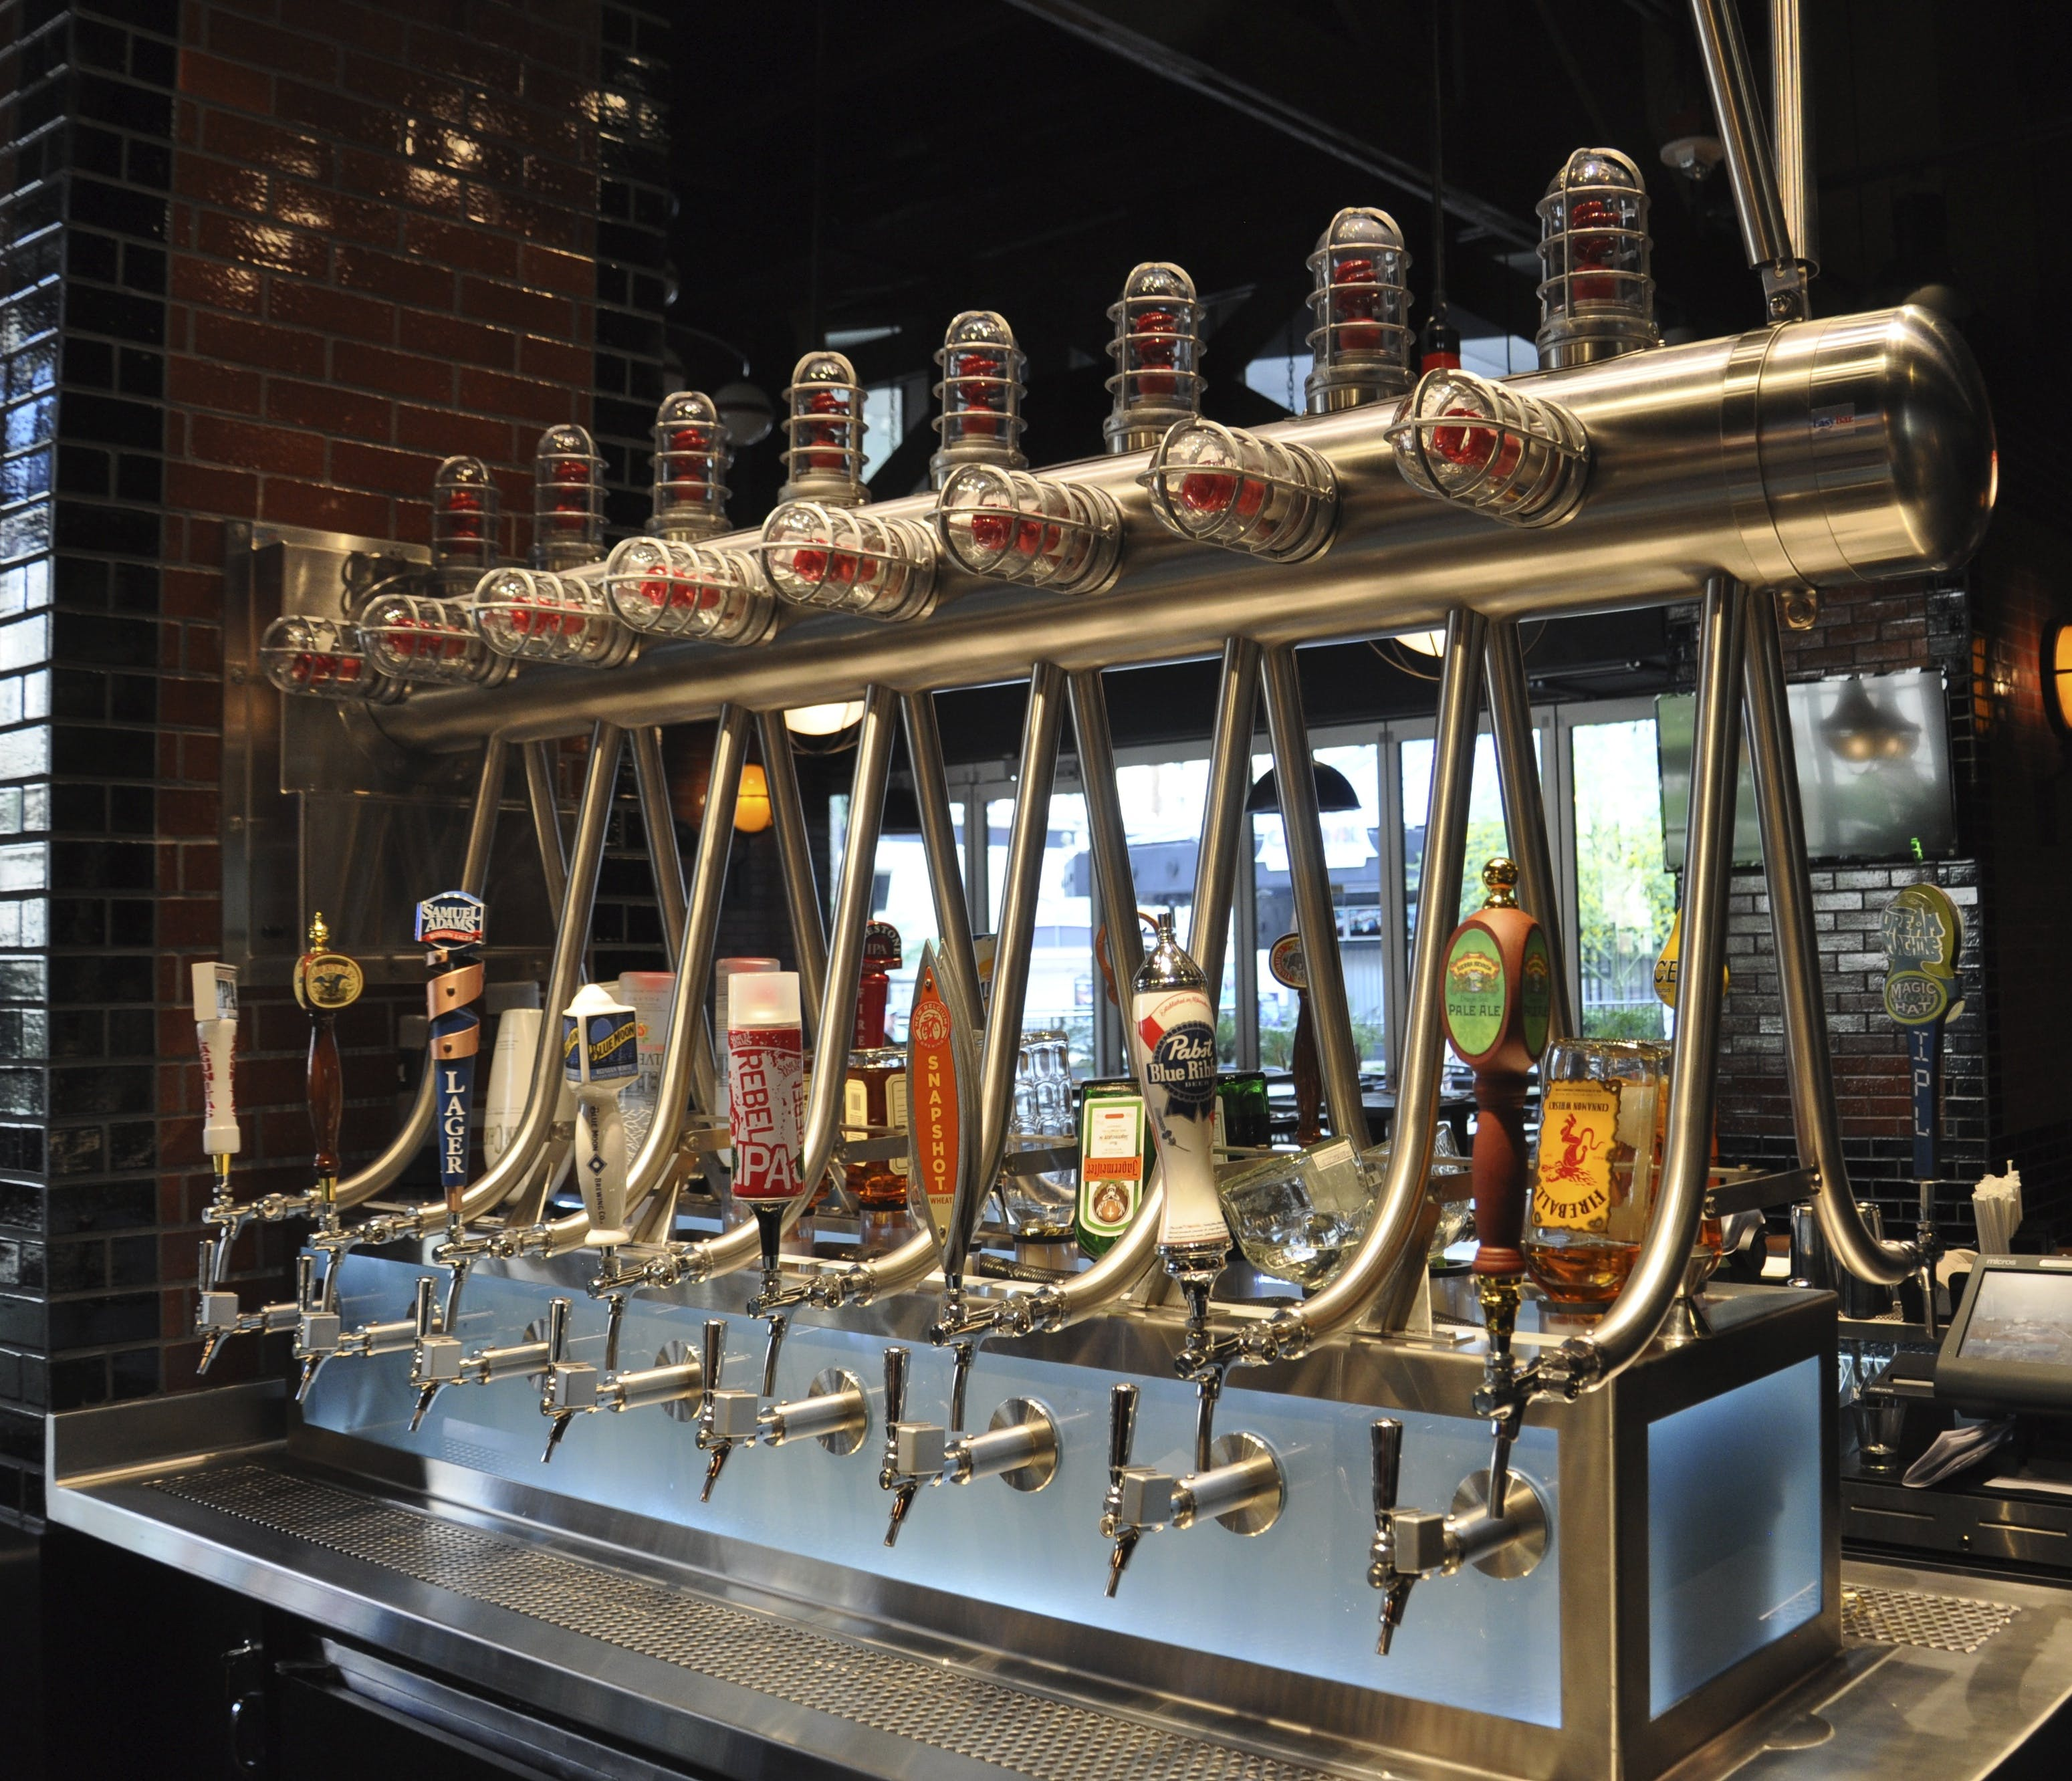 Draft Beer Systems - sold by Easybar